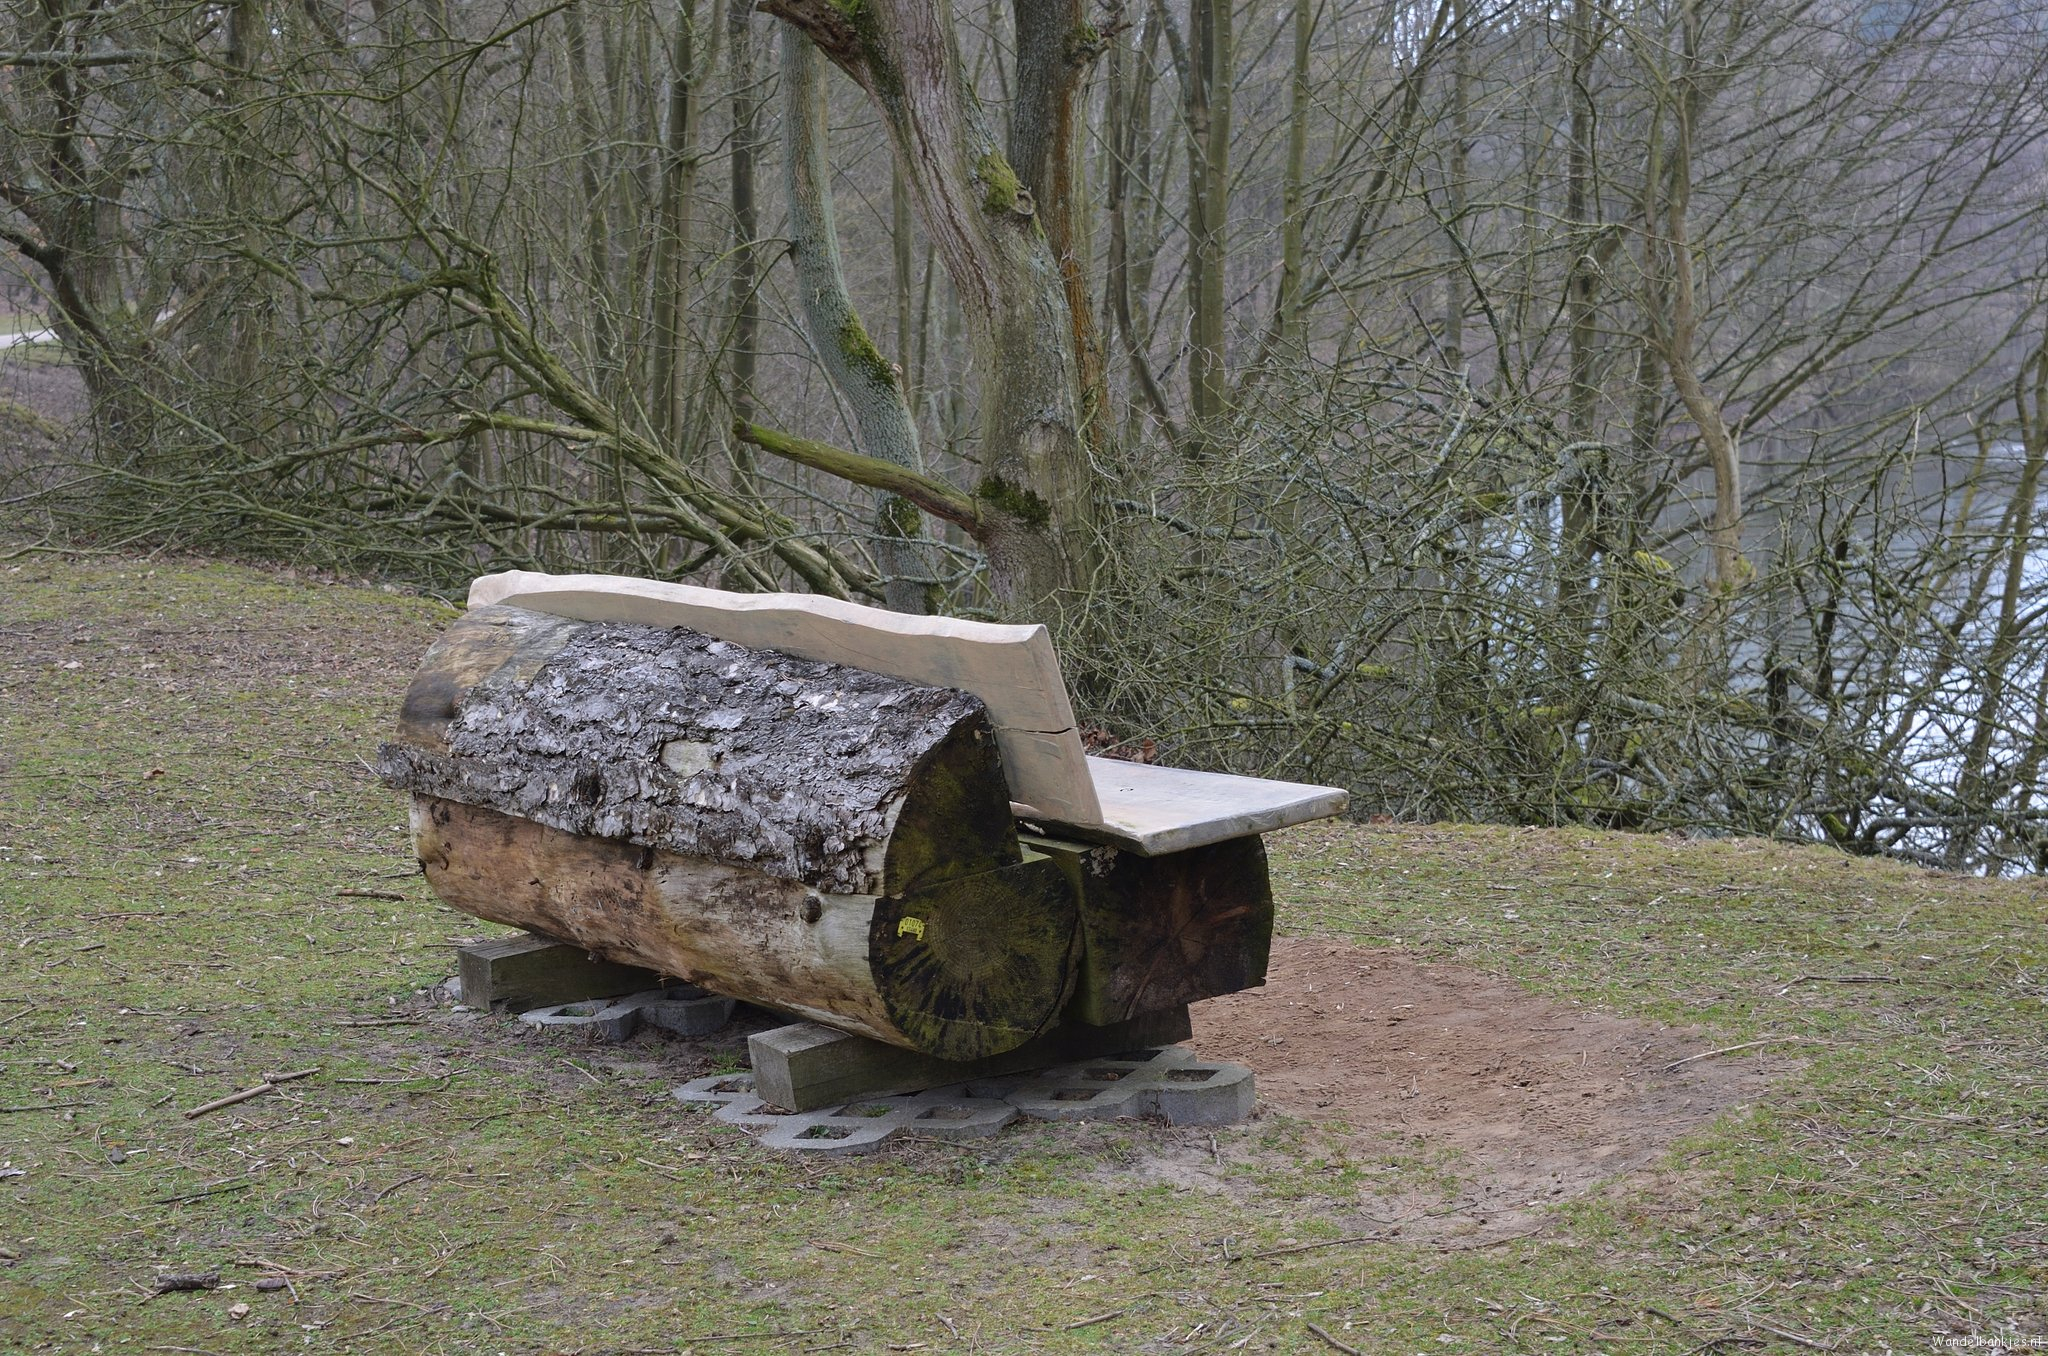 rt-naturallyoss-relaxed-birds-spotting-from-this-bench-in-the-amsterdam-waterleidingduinen-walking benches-https-t-co-eqamjwqme7